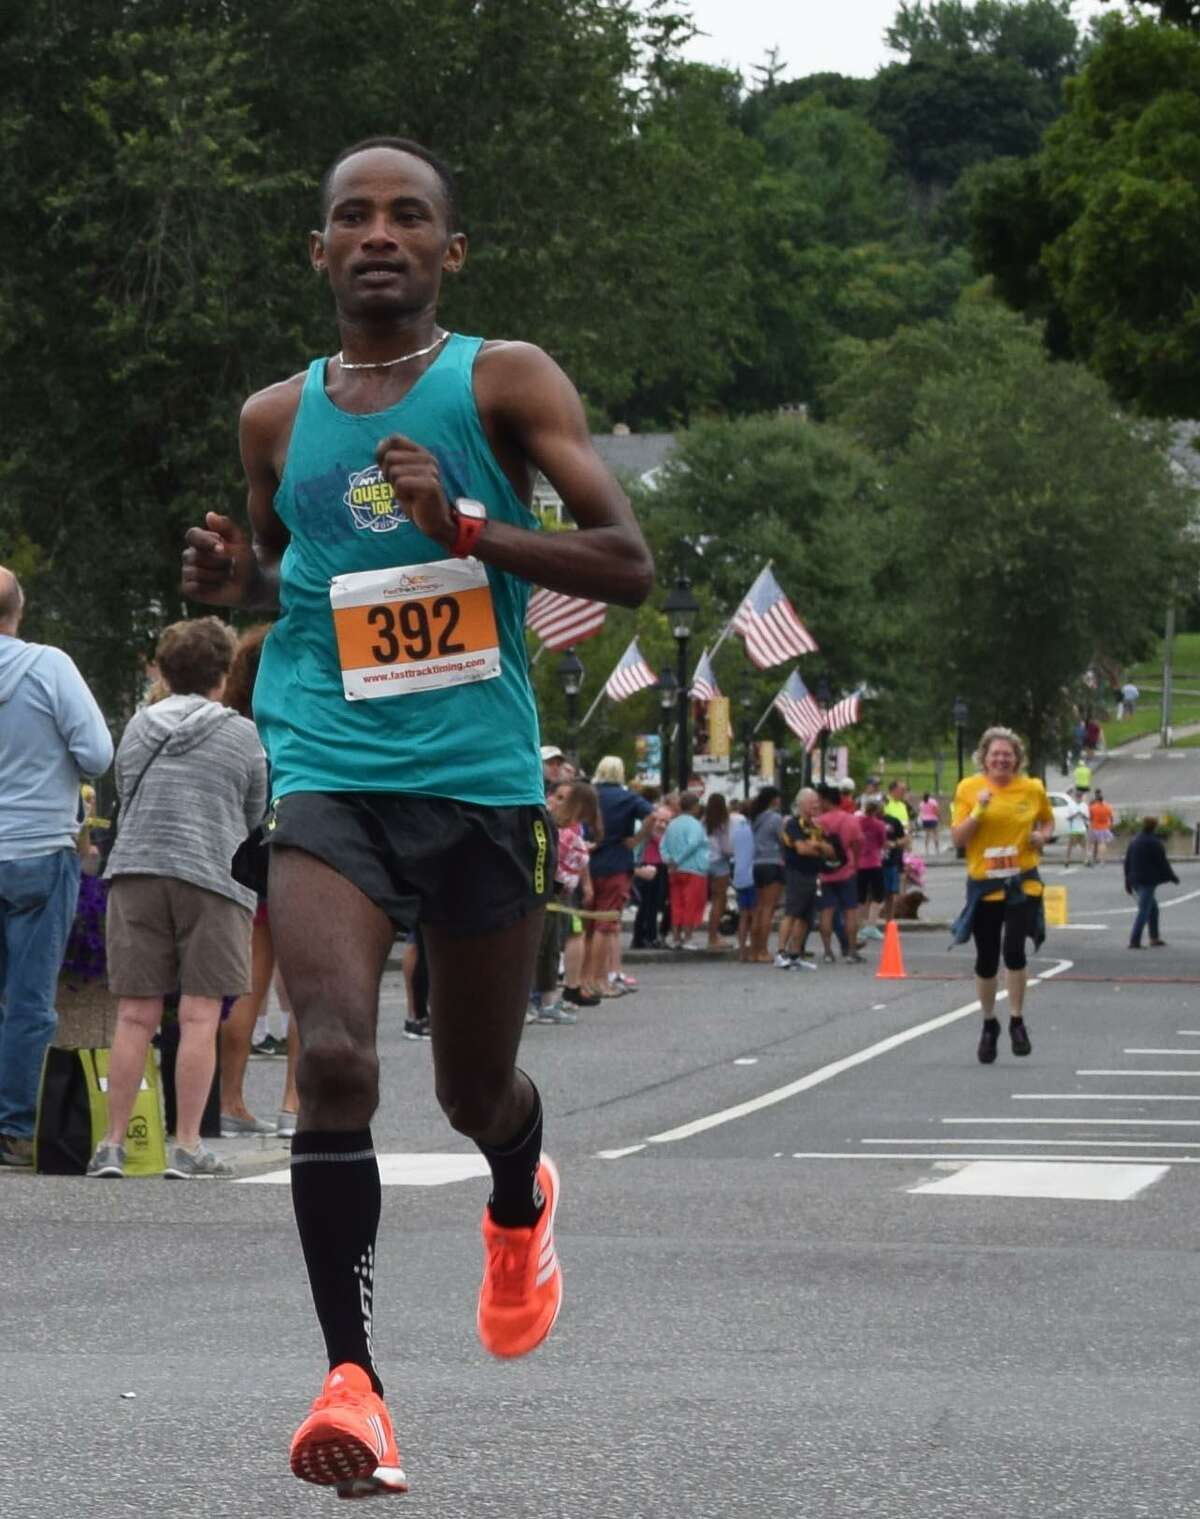 The 50th annual 8-Mile Road Race and 5K was held July 29 on conjunction with the Village Fair Days. More than 500 people participated. Abukebede Diriba of New York, N.Y., placed first in the eight-mile race with a time of 44:33. To view the top runners in various categories for each race and for more photographs, see next week's Spectrum and www.newmilfordspectrum.com.